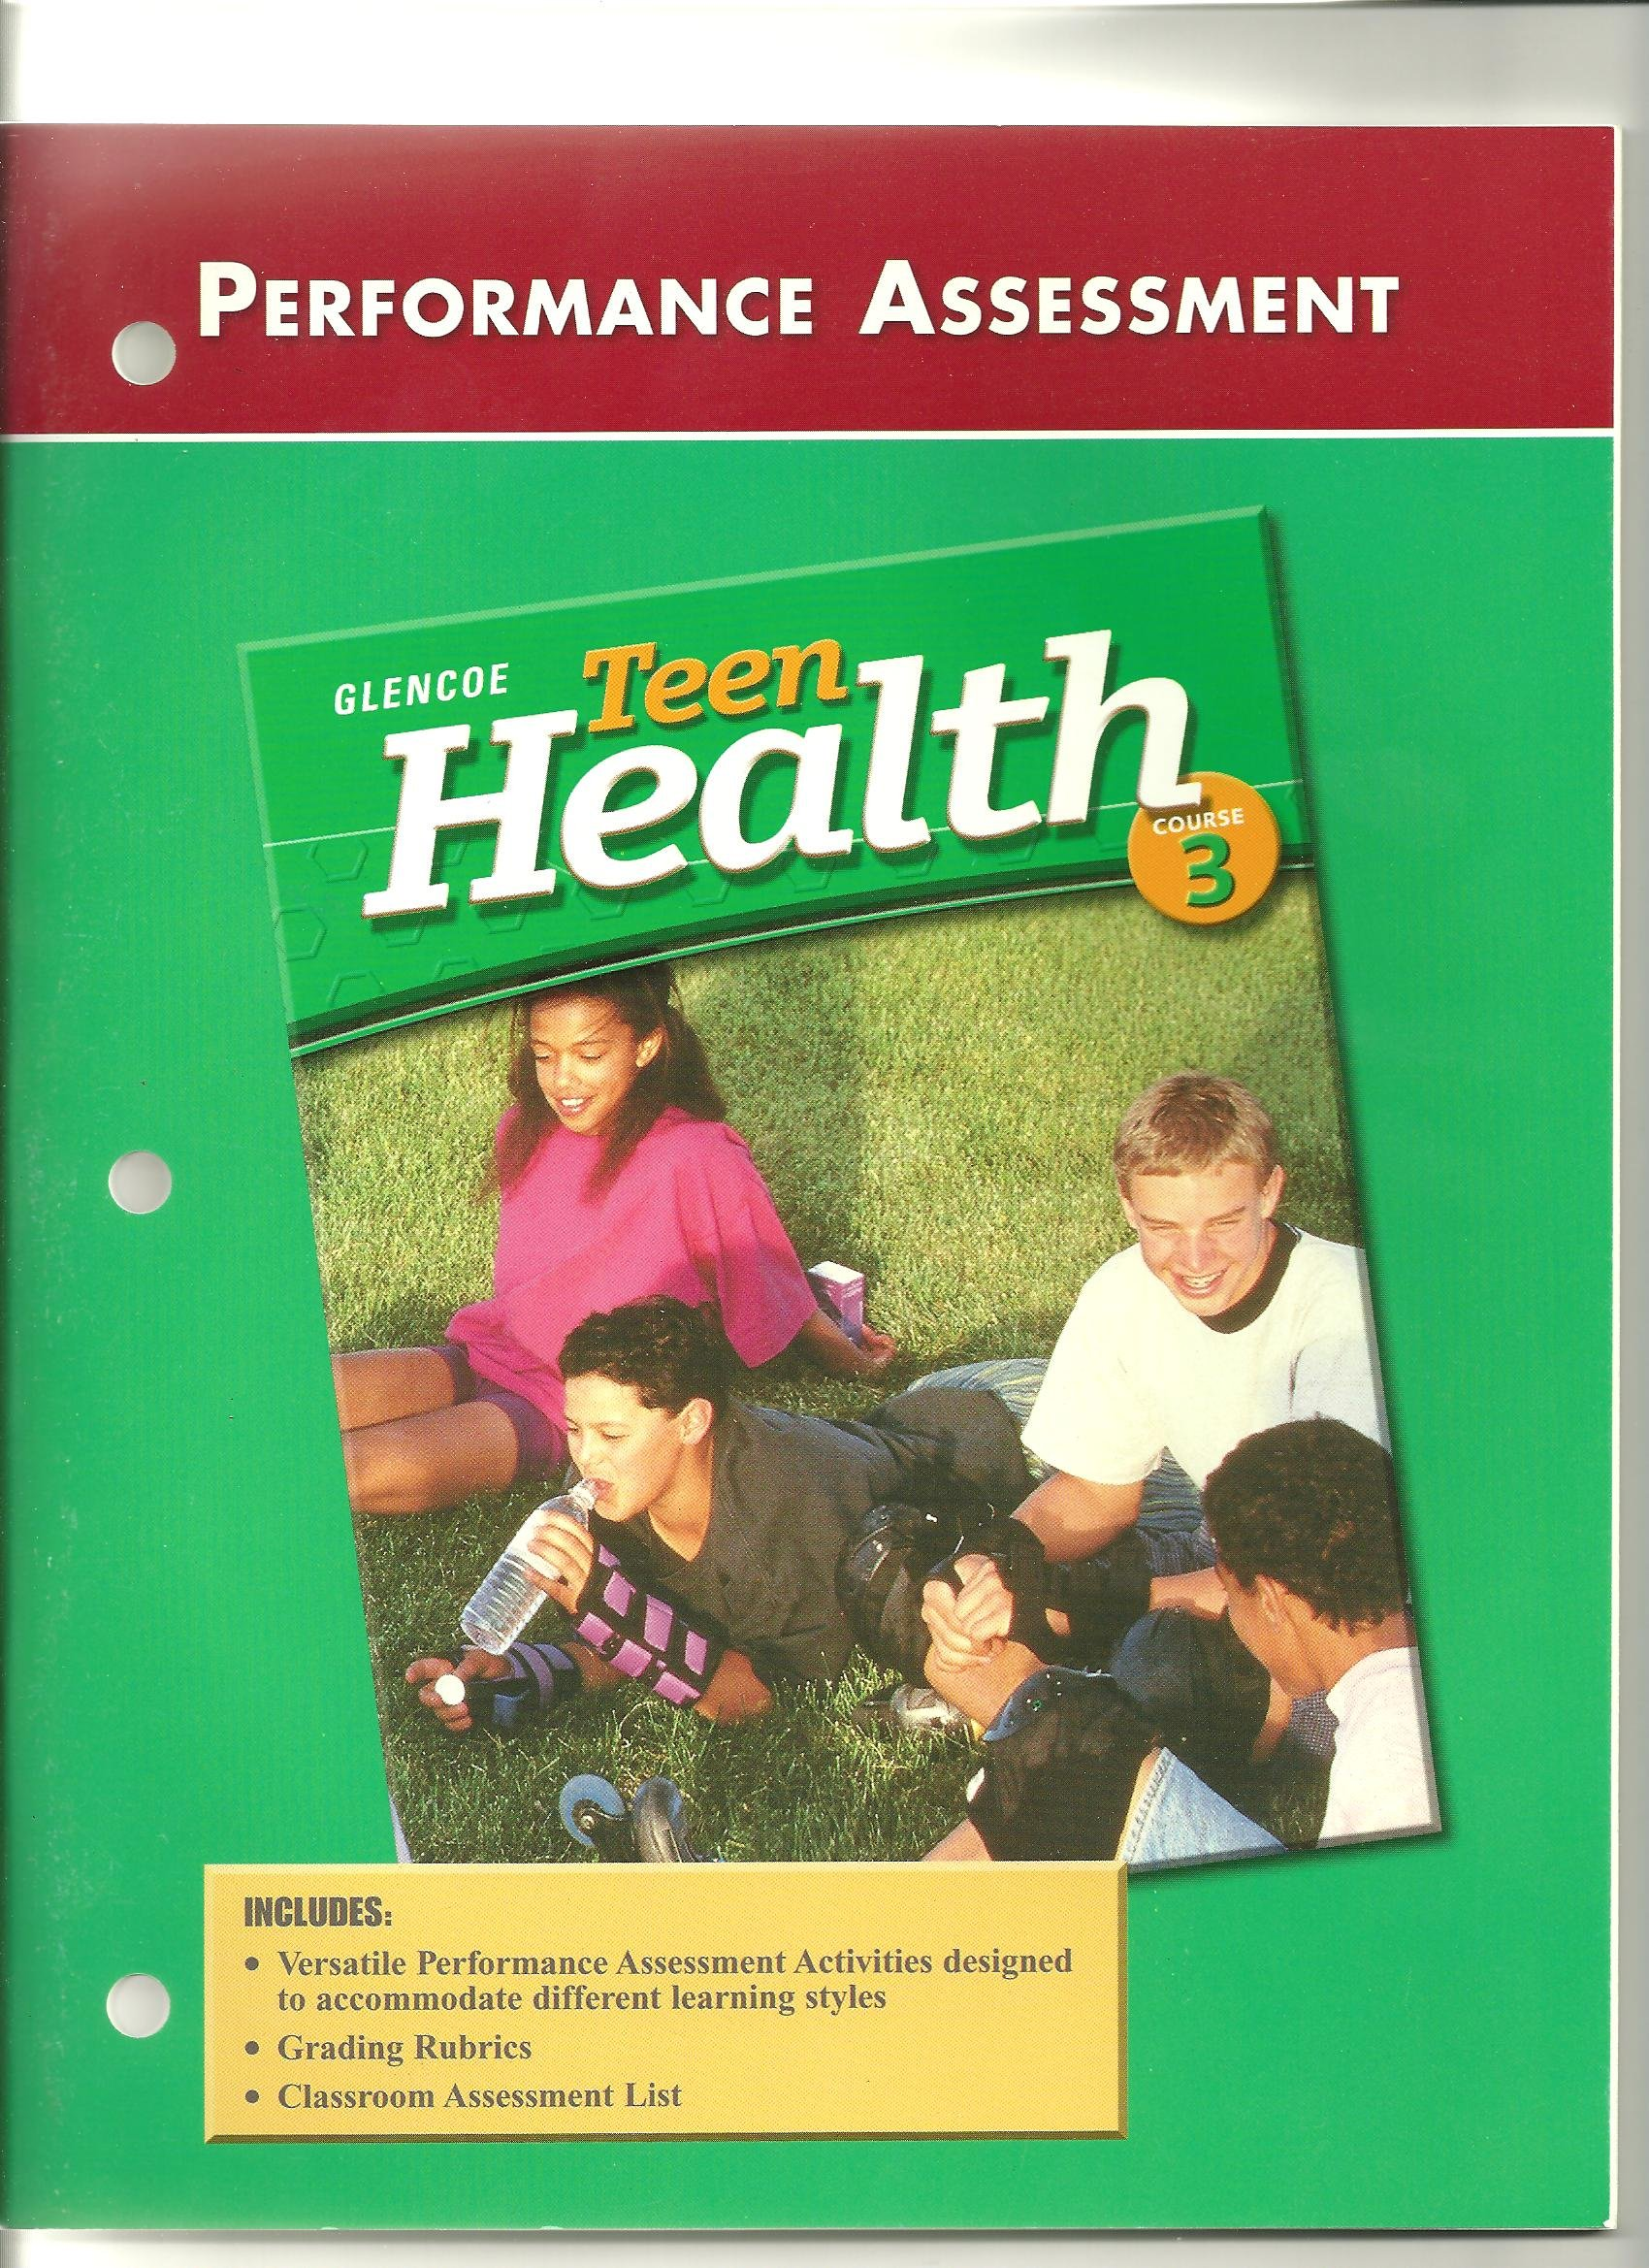 Teen Health Performance Assessment Course 3 (Glencoe) by Glencoe/McGraw Hill